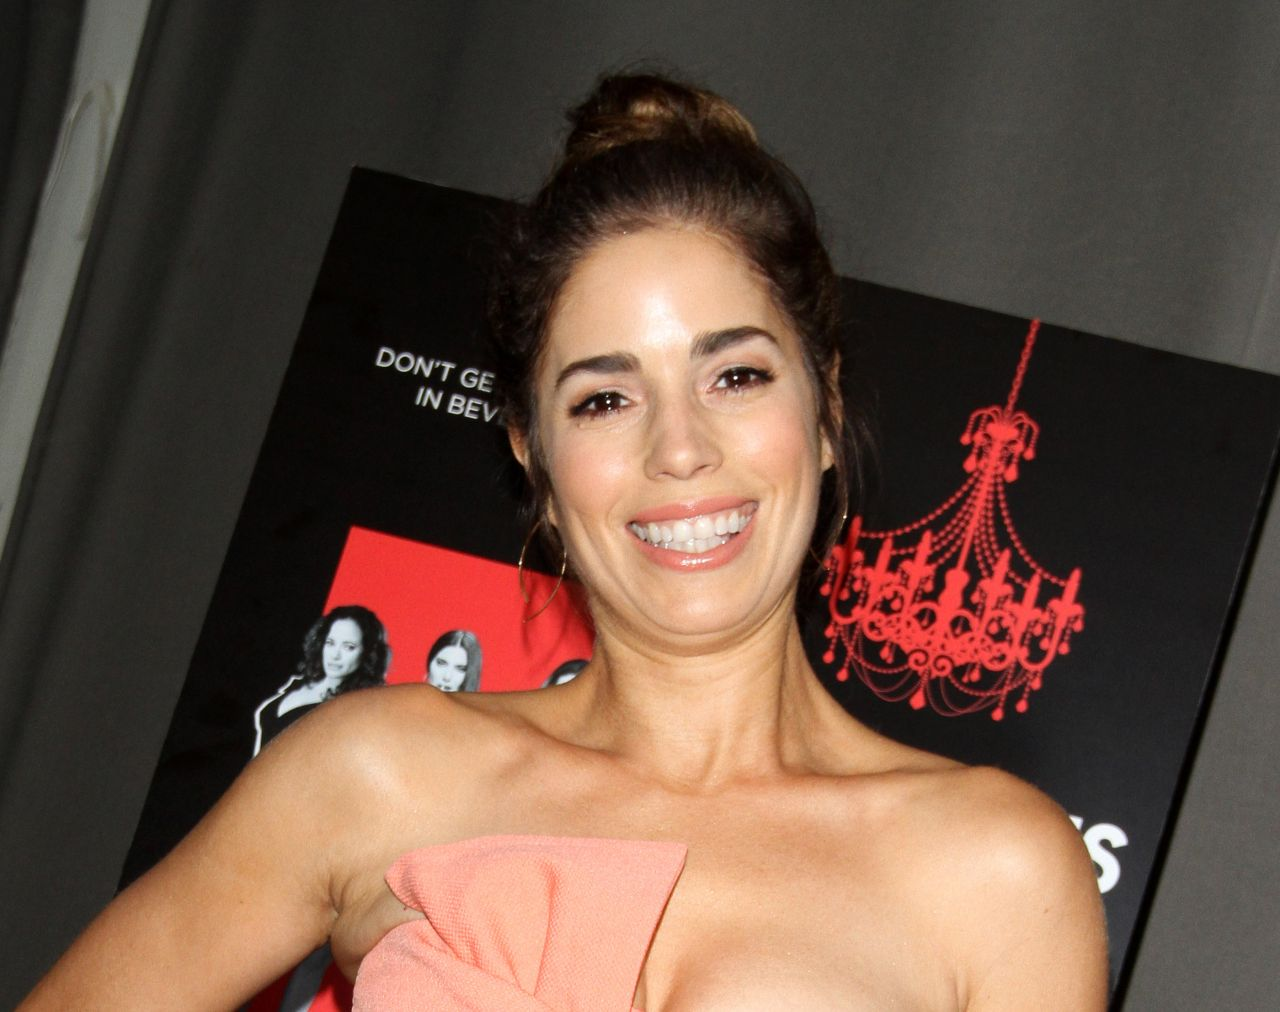 Ana Ortizs Leaked Cell Phone Pictures